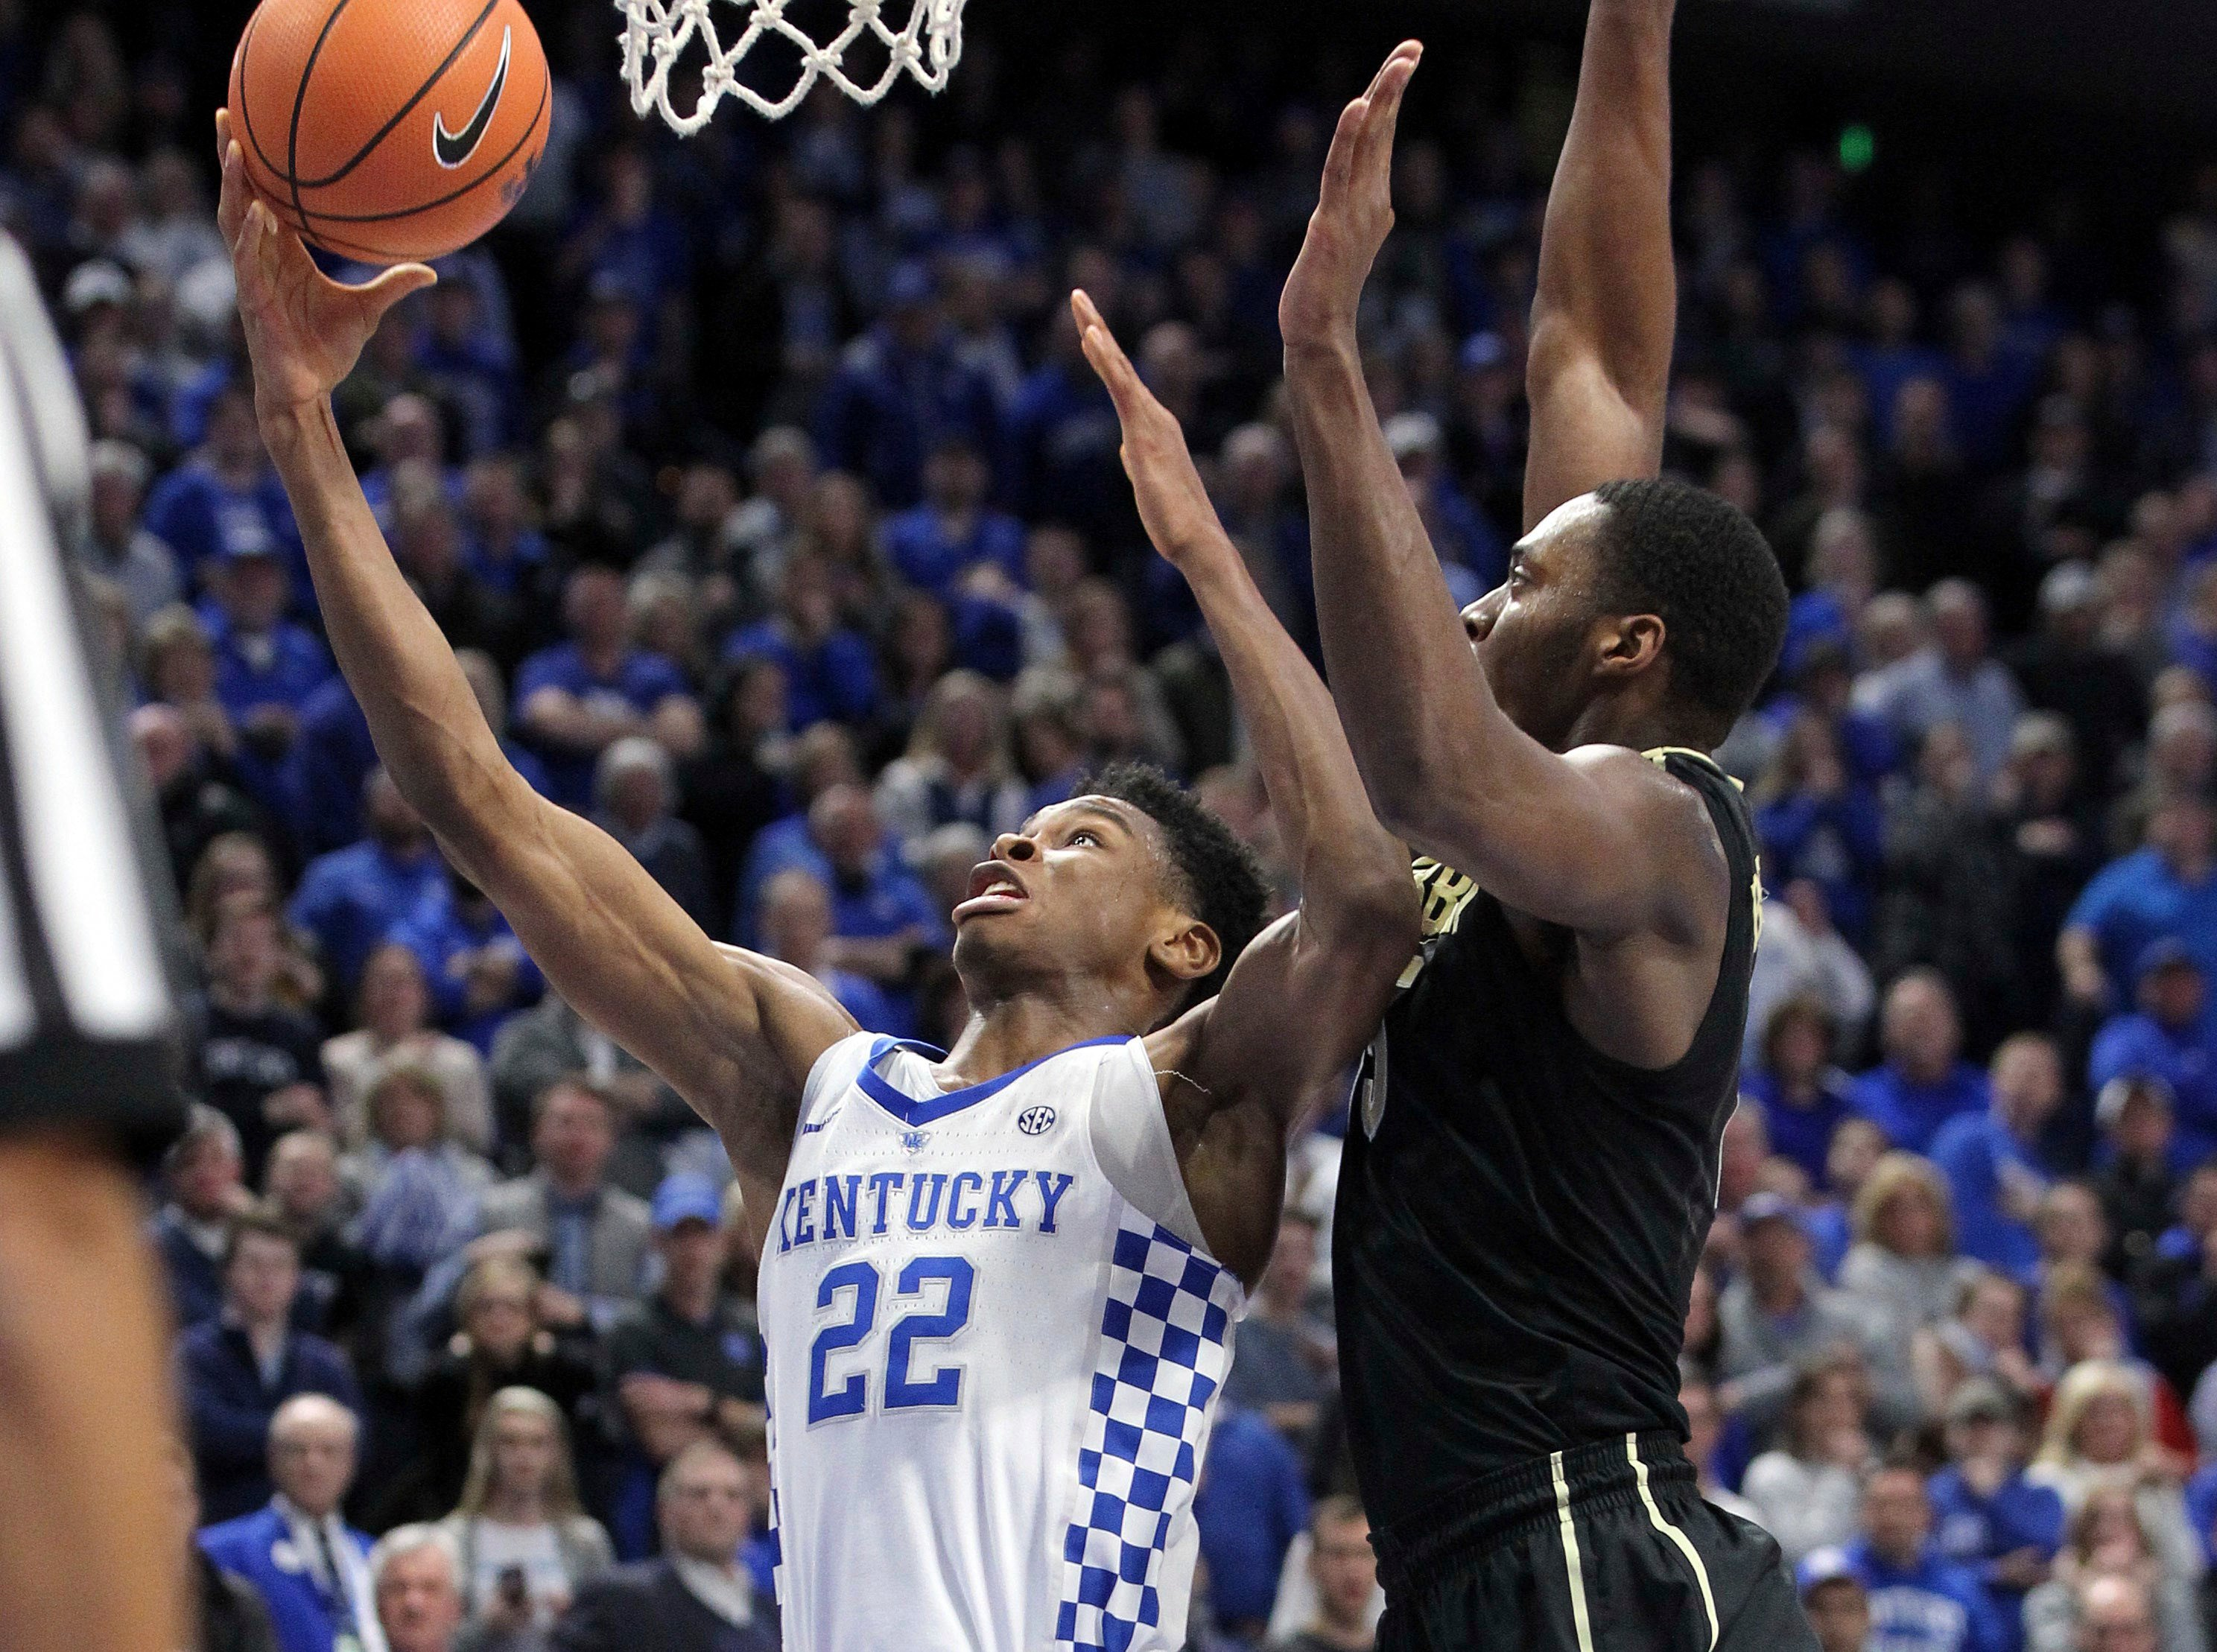 Late foul dooms Vanderbilt in overtime loss at No. 21 Kentucky